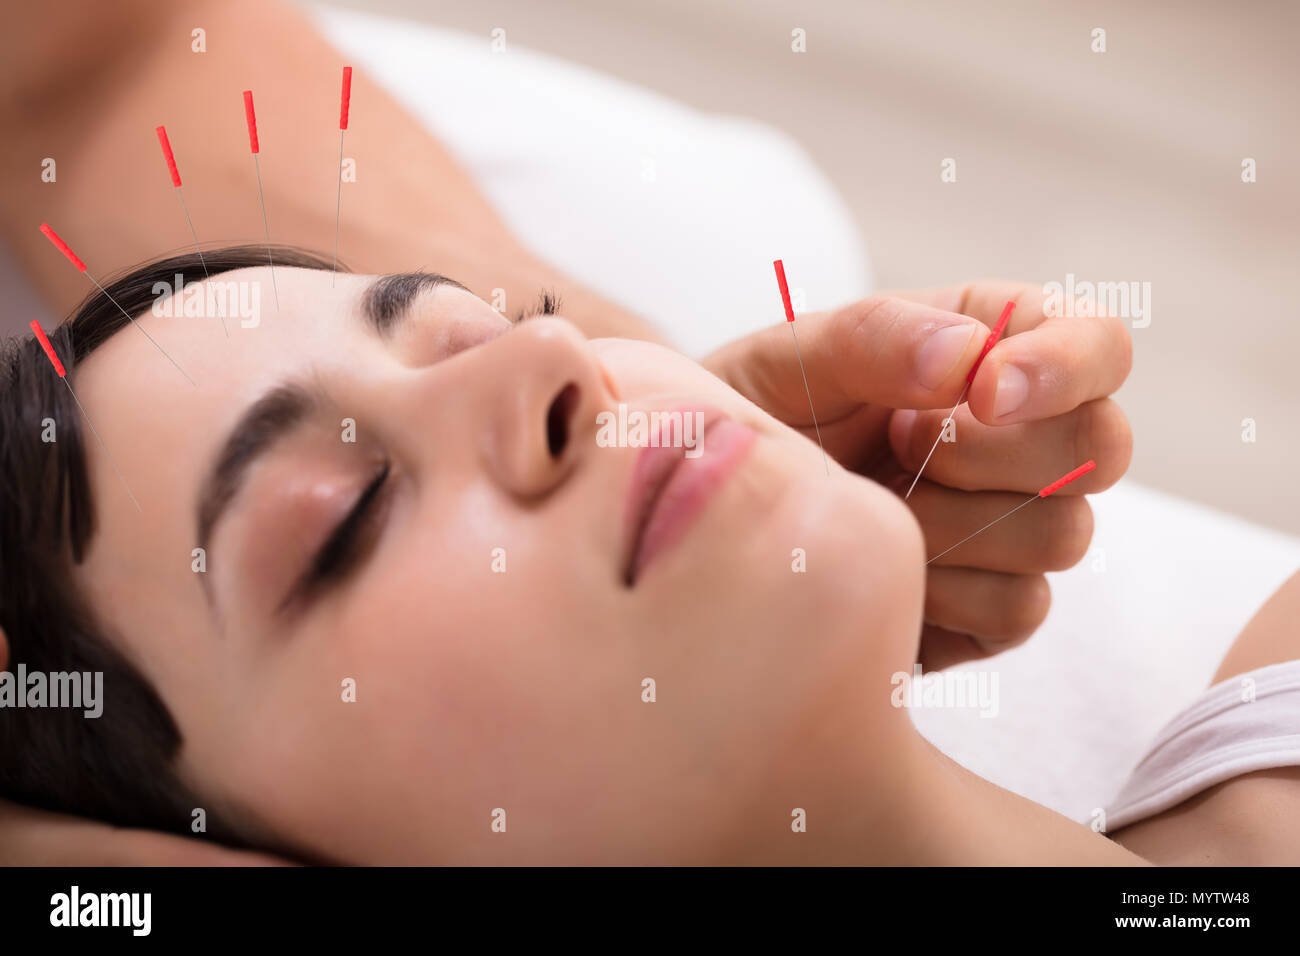 Beautiful Young Woman Getting Acupuncture Treatment In Beauty Spa Stock Photo